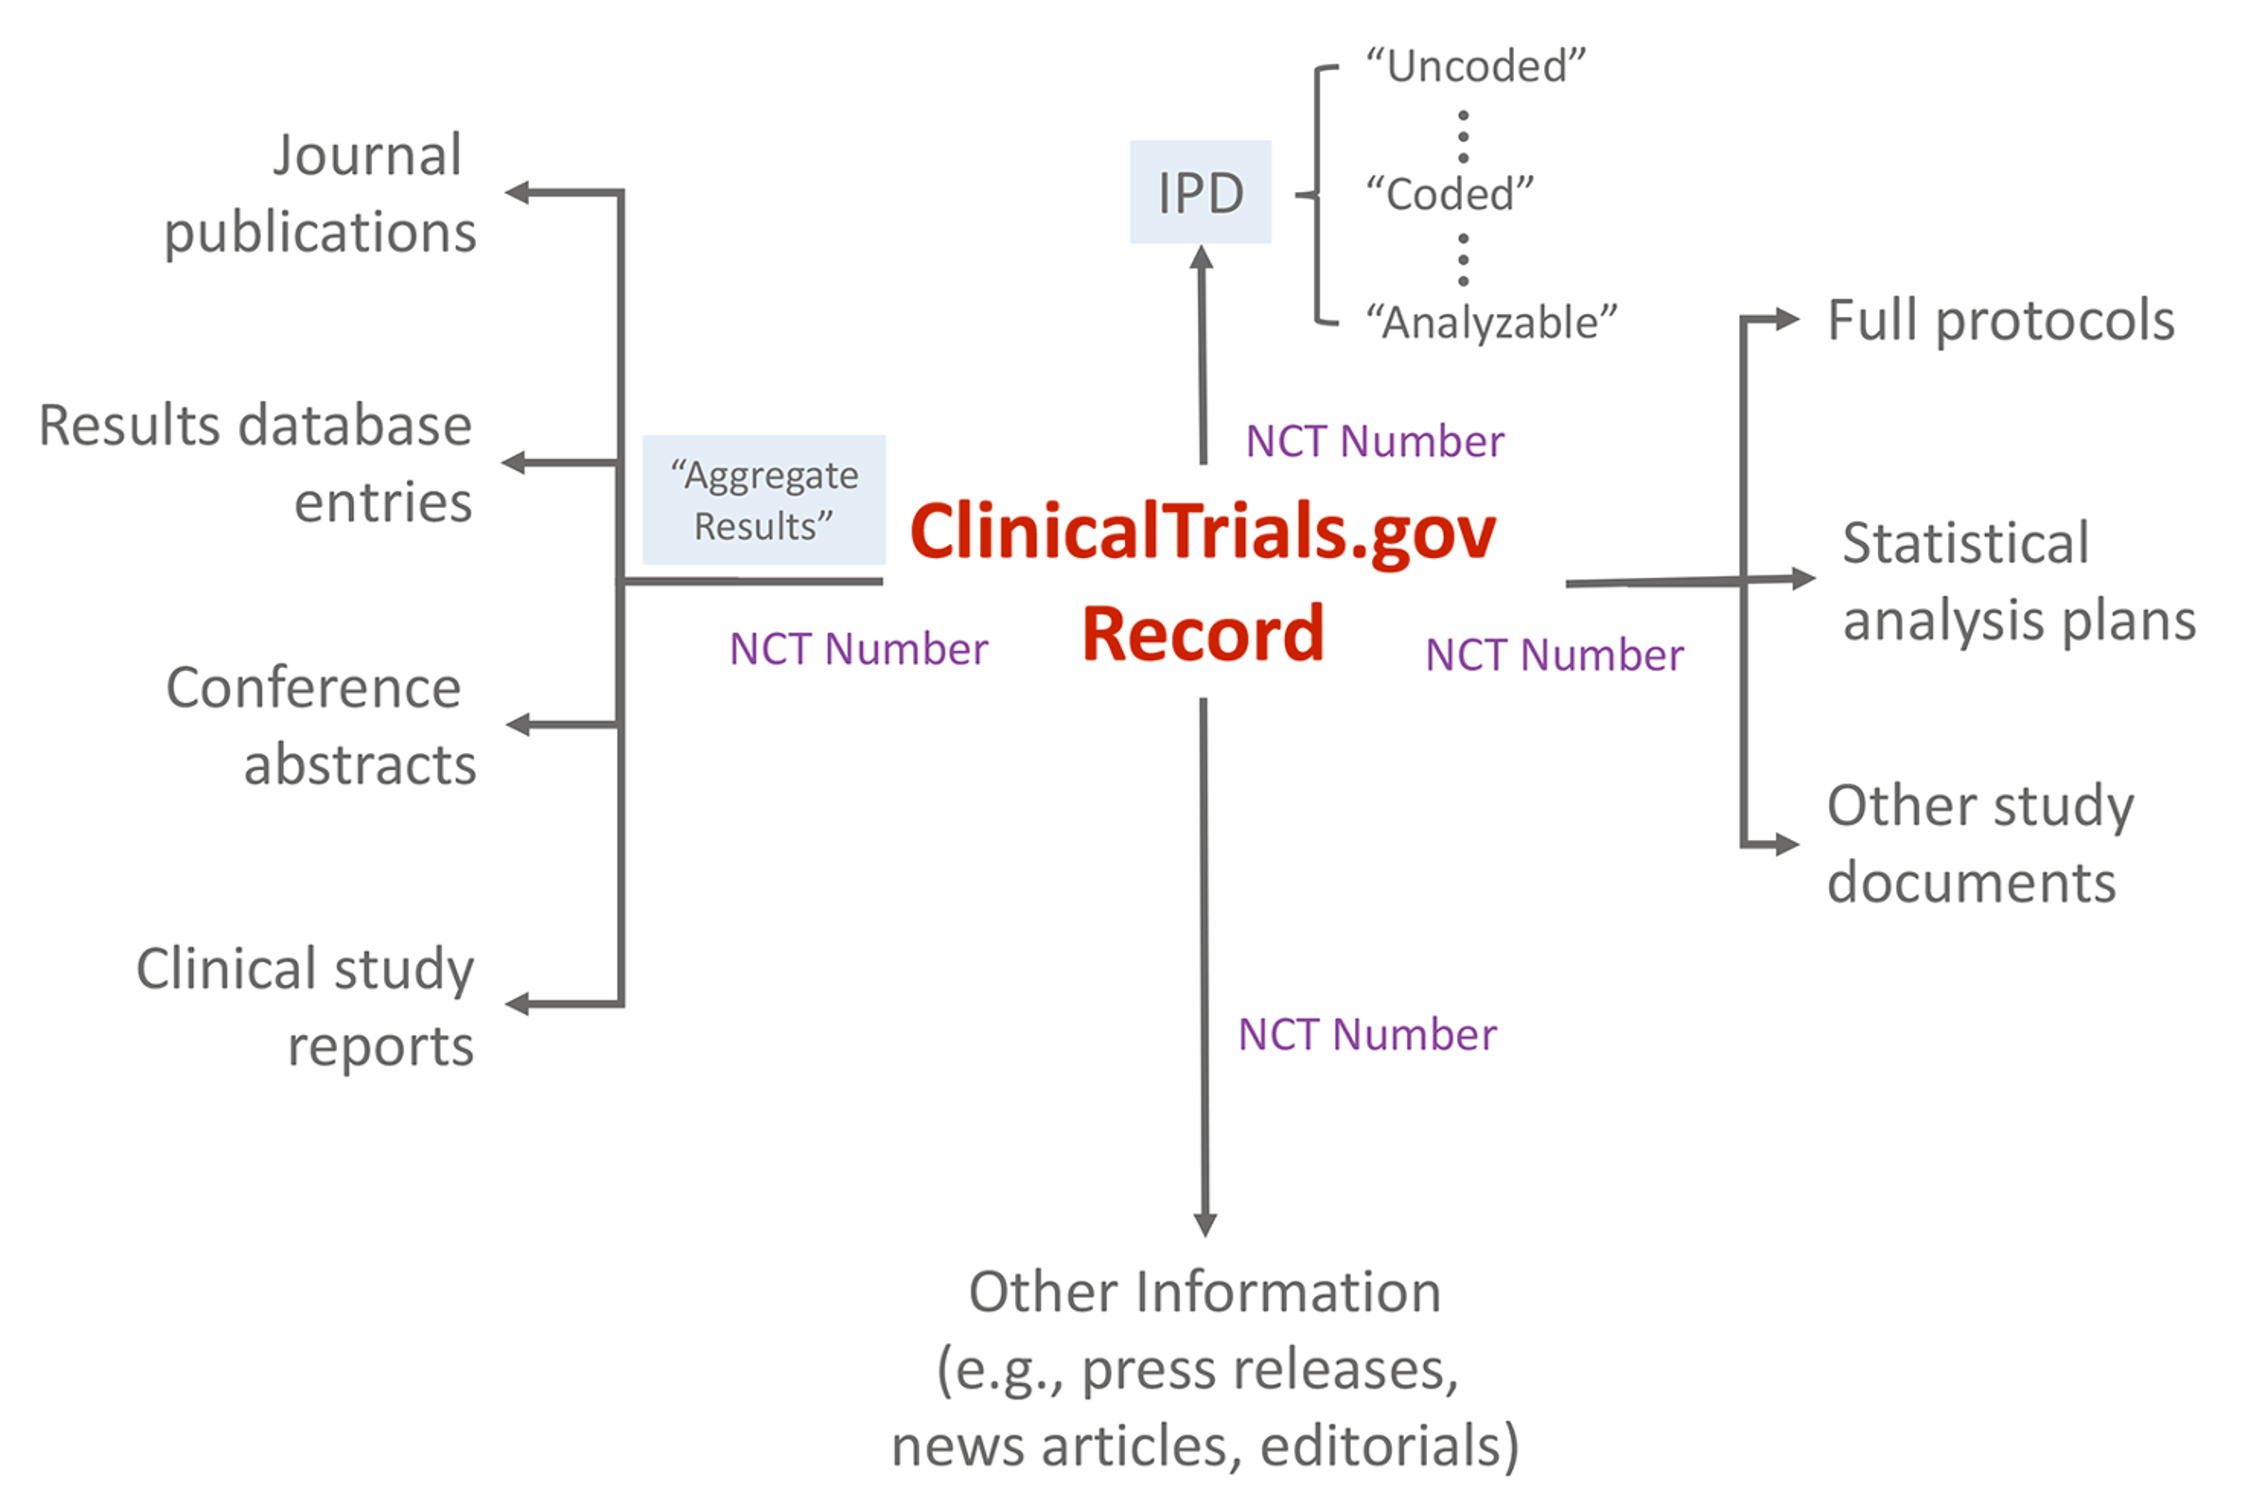 """Schematic depicting <a href=""""http://ClinicalTrials.gov"""">ClinicalTrials.gov</a> as an """"information scaffold"""" using the record unique identifier (NCT number) to link to various online resources."""